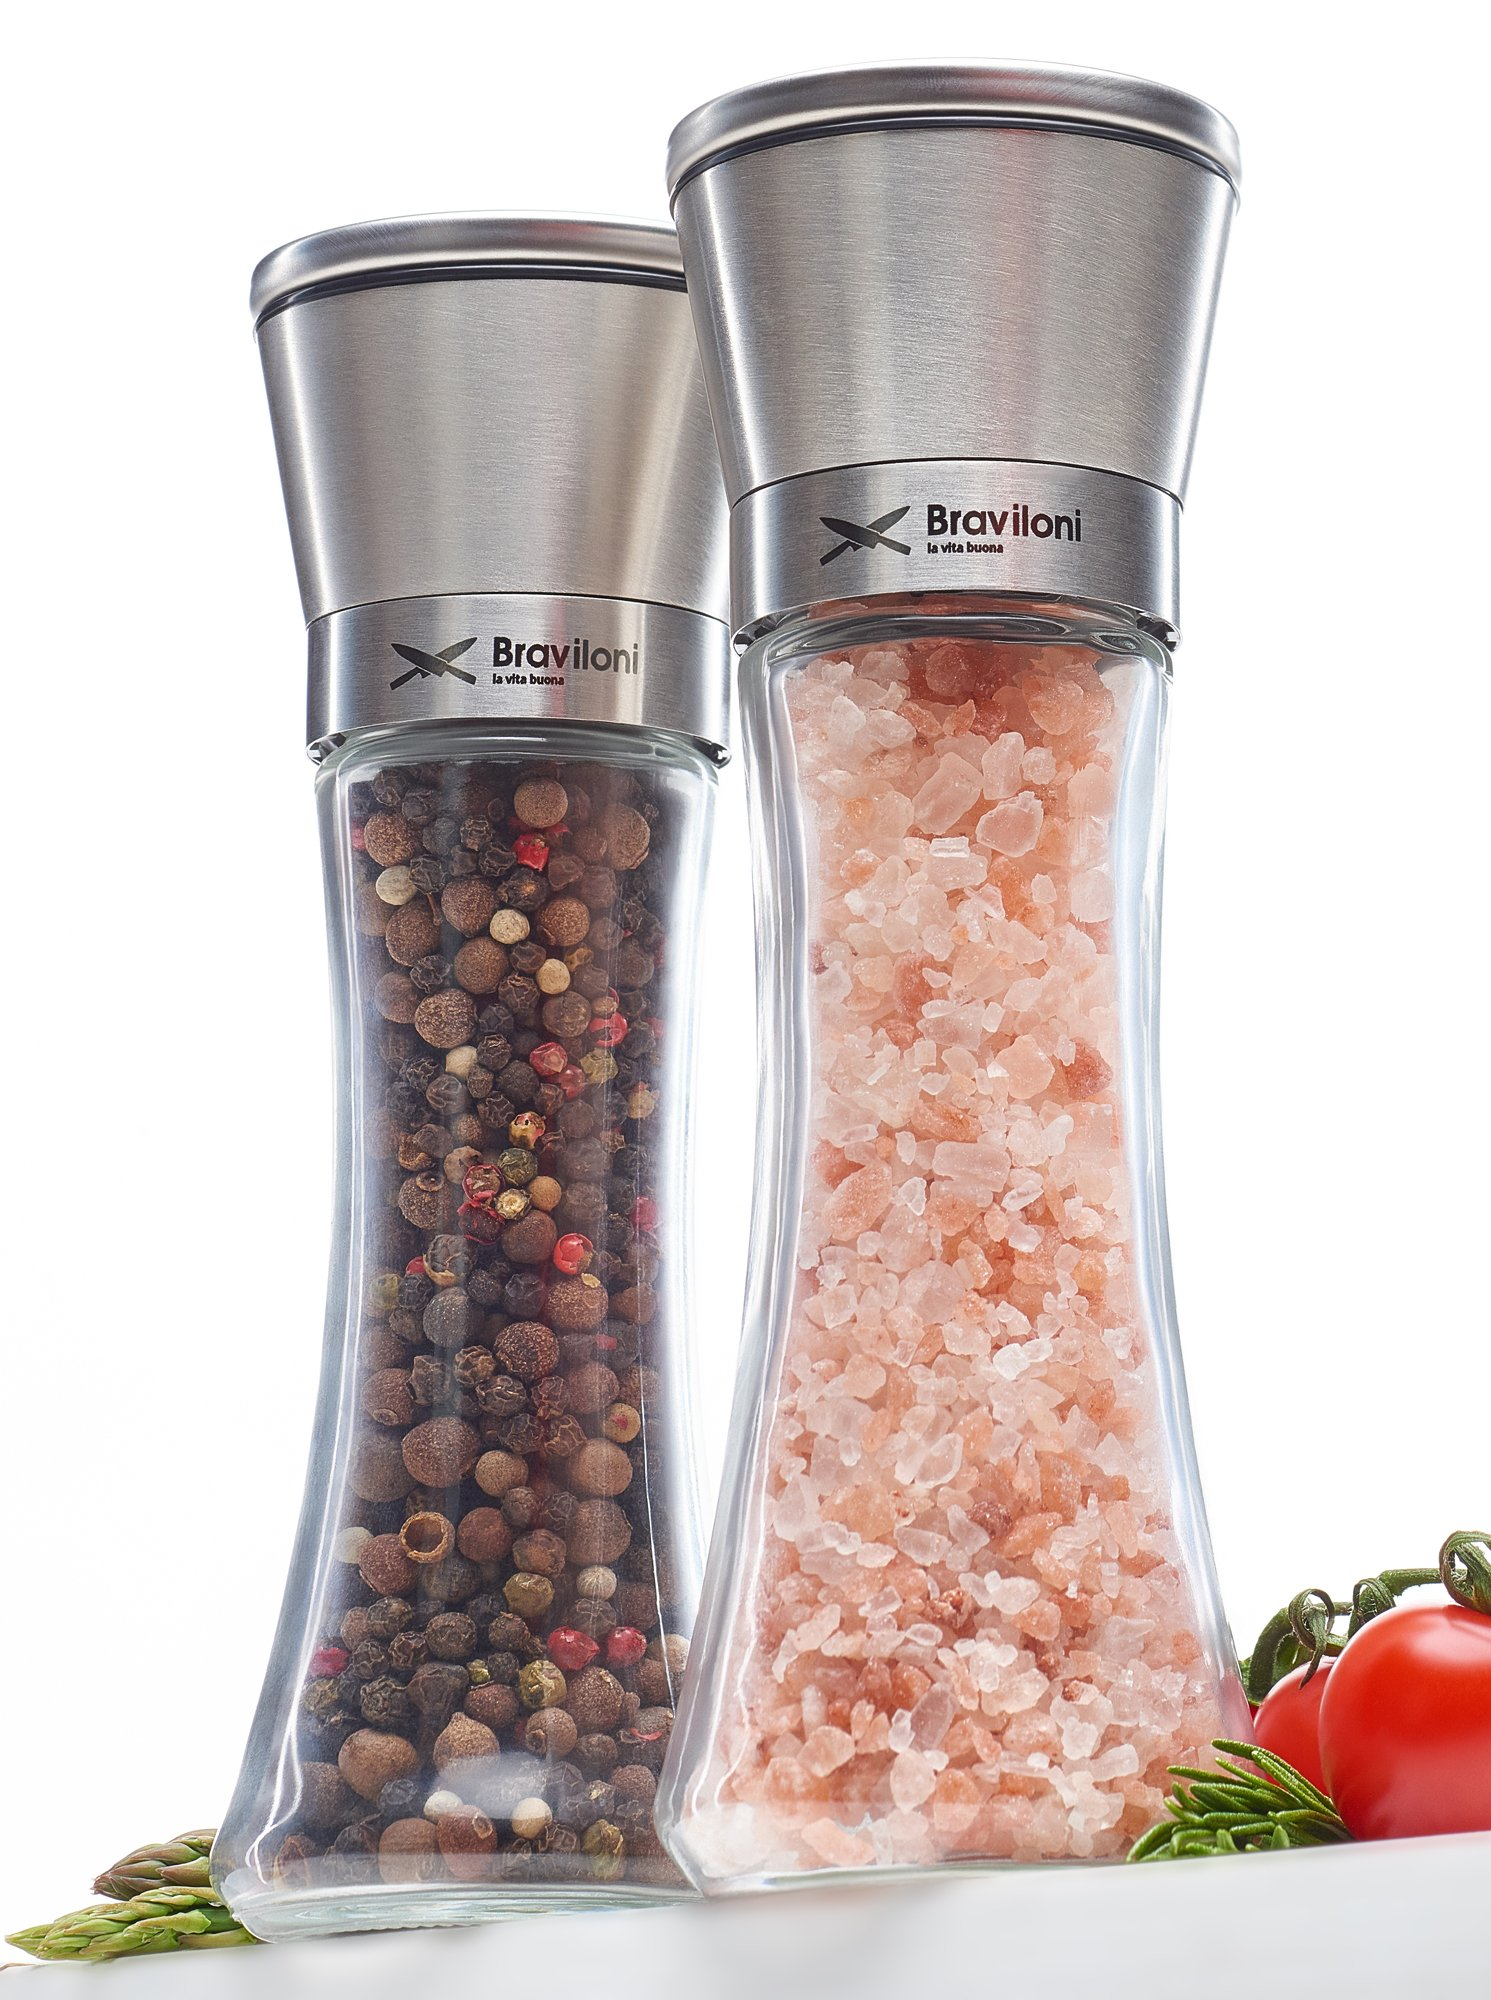 Salt and Pepper Grinder Set - Mill and Shakers Kit - Brushed Stainless Steel, Tall Premium Glass and Adjustable Ceramic Grinding System for Cooking Spices - Perfect on Kitchen by Braviloni